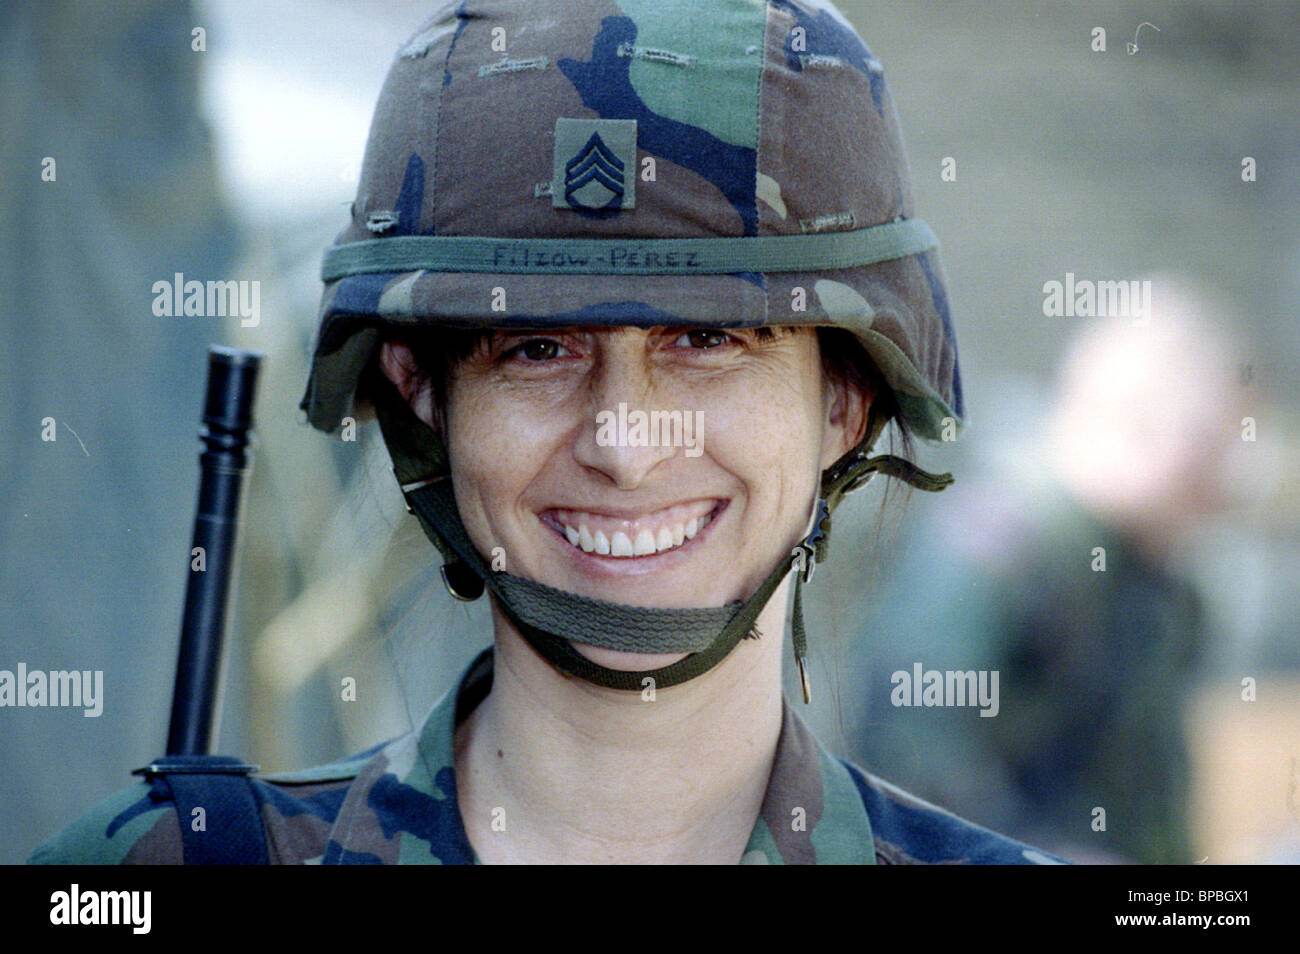 U.S. army female officer Leah Filzow-Peres. - Stock Image